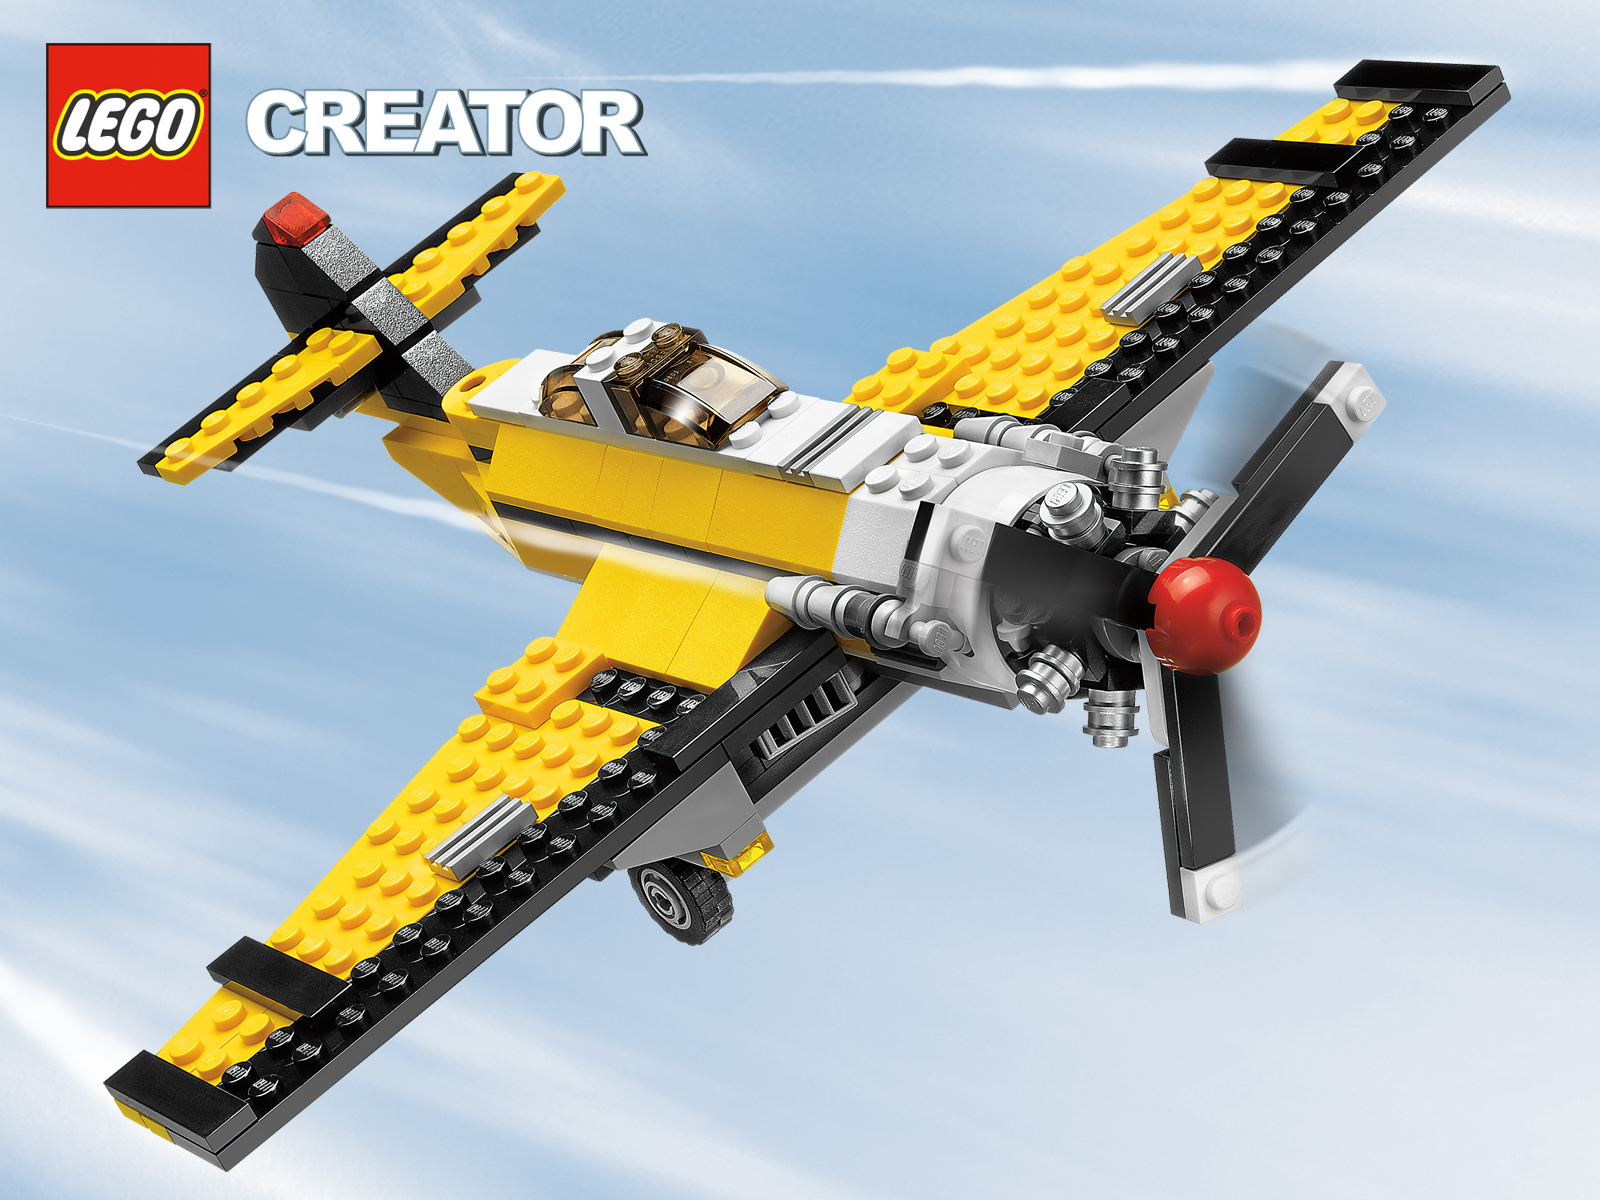 Pin Lego Creator On Pinterest. Full resolution‎  portrait, nominally Width 1600 Height 1200 pixels, portrait with #C3A008.